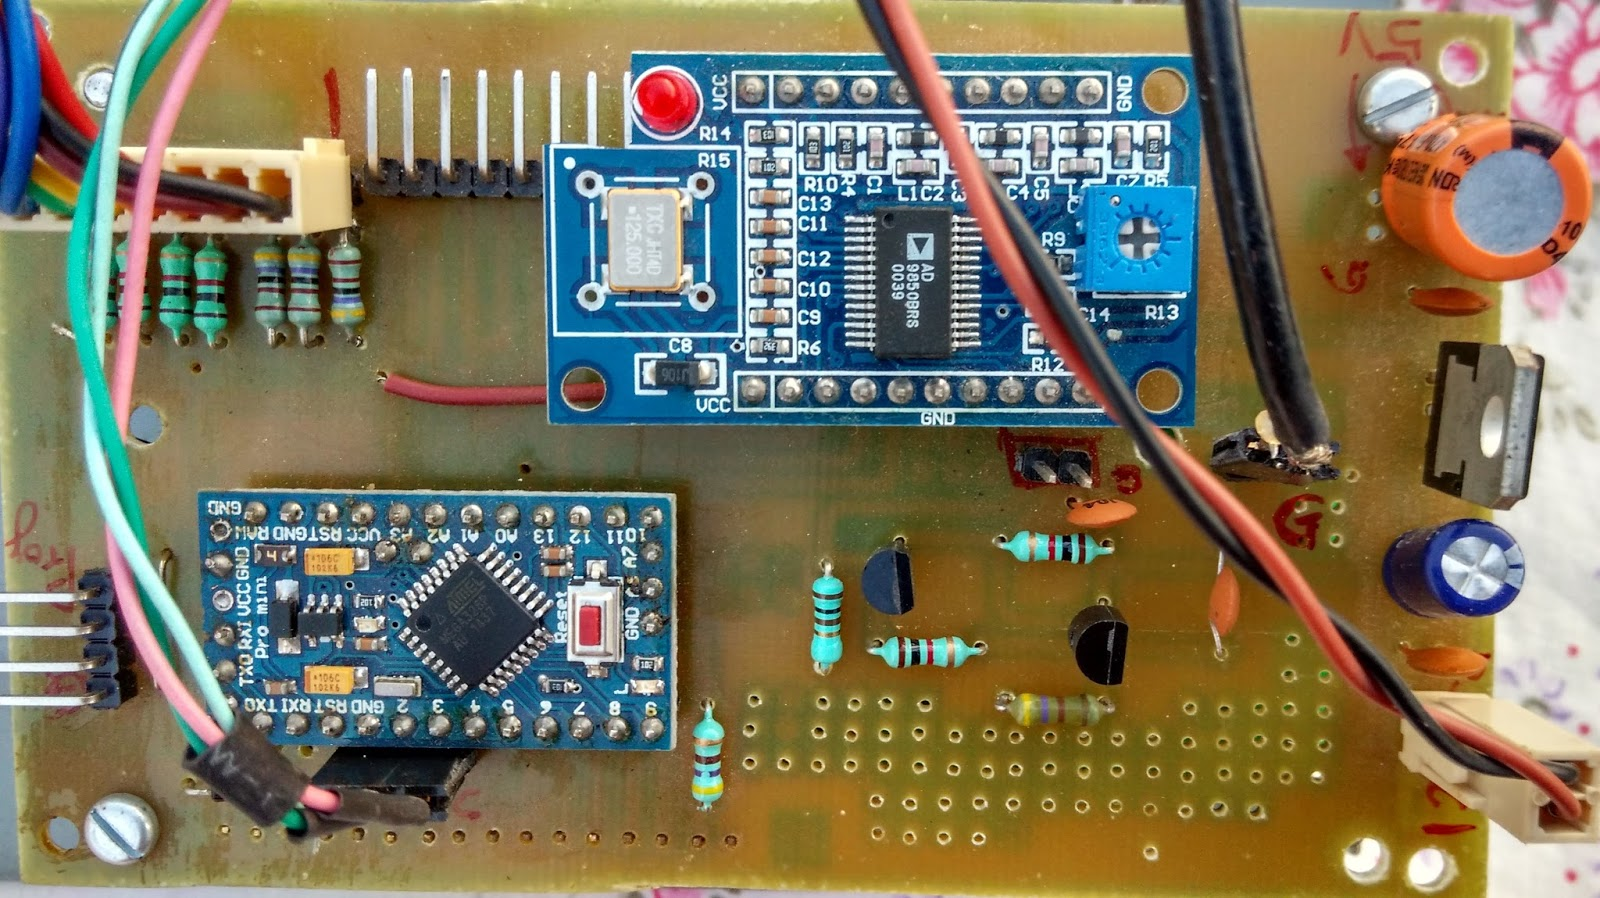 Arduino Dds Using 9850 Vu2spfs Ex Vu3seg Ham Radio Page Arduinocircuitboardjpg The Pcb Is Filled With Two Other Pcbs For Pro Mini Bottom Left And Module Top Center